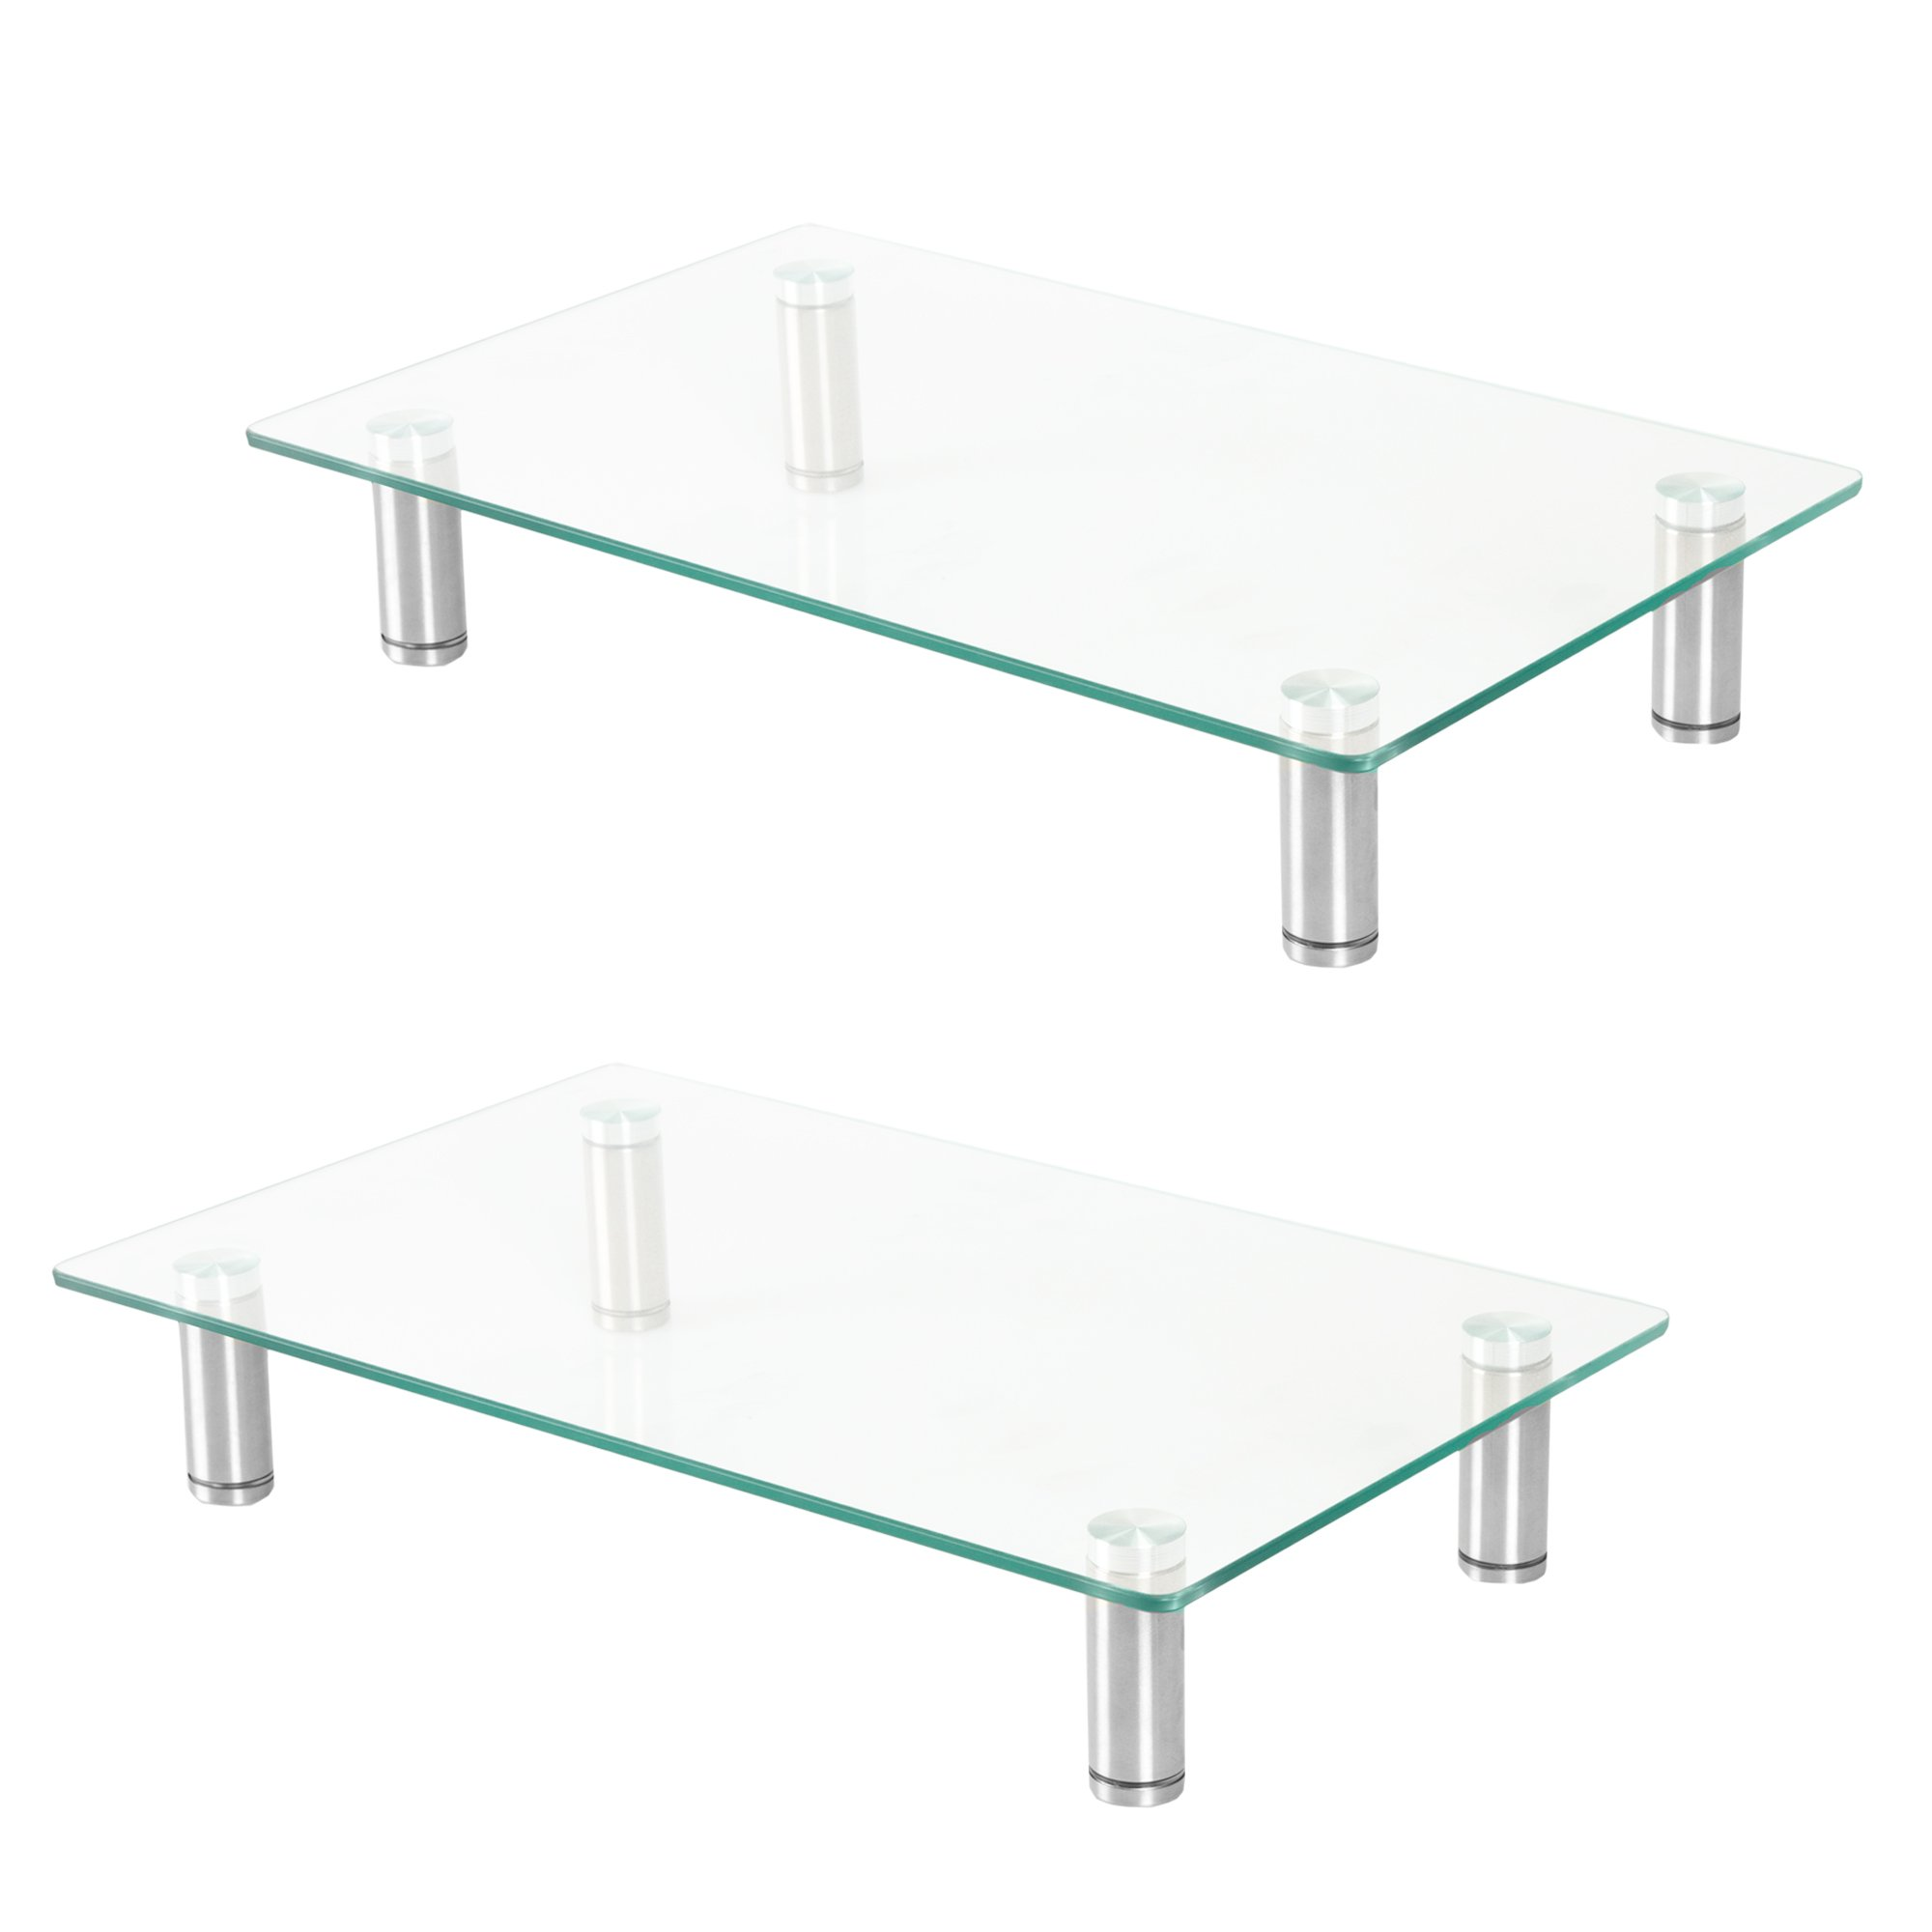 Glass Monitor Stand 2 Pack - 16 x 9.5 Inch Desktop Risers for Computer Monitors, Laptop & More